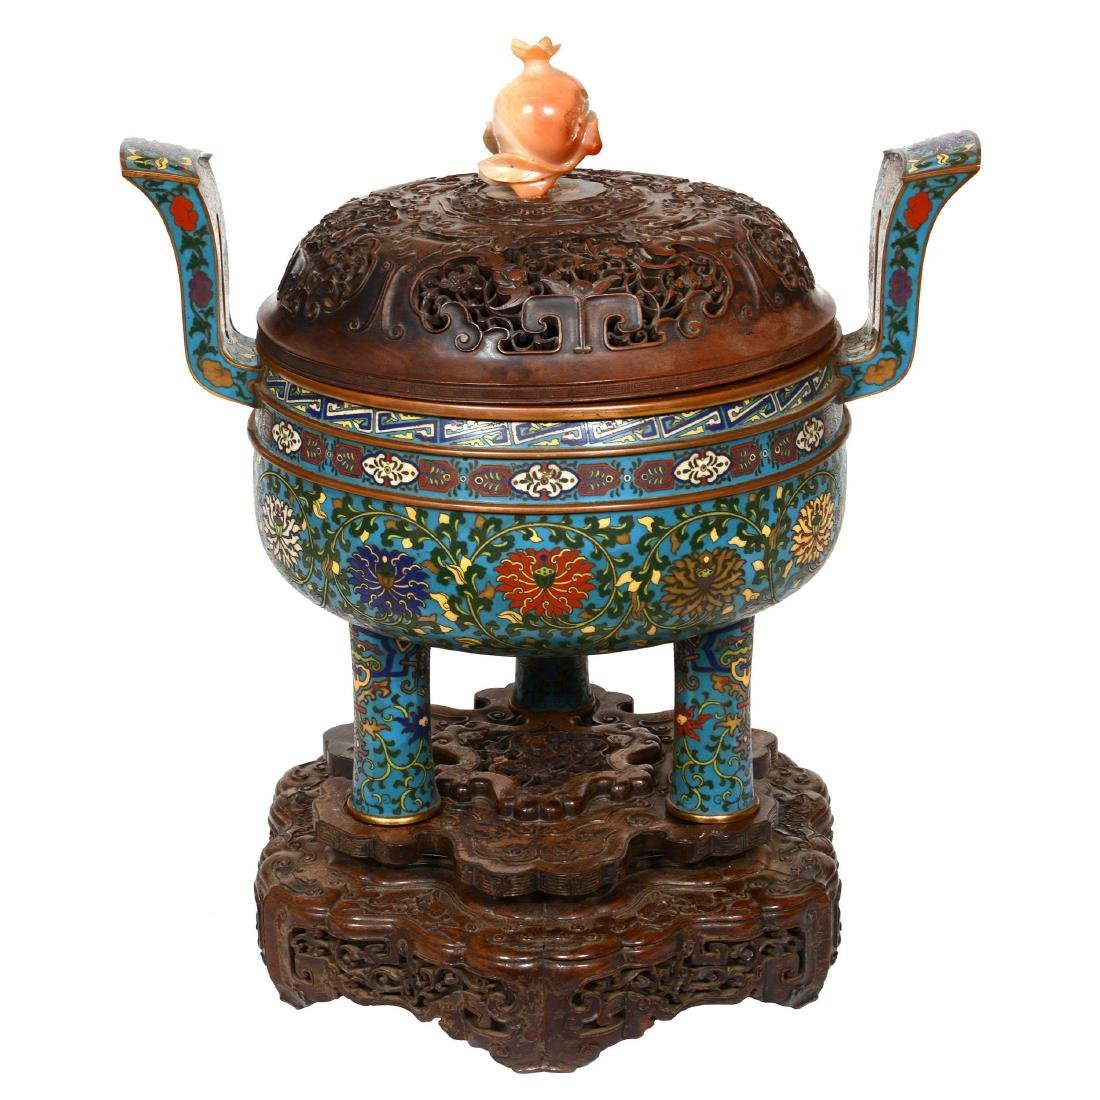 Cloisonne Covered Urn on Teakwood Stand